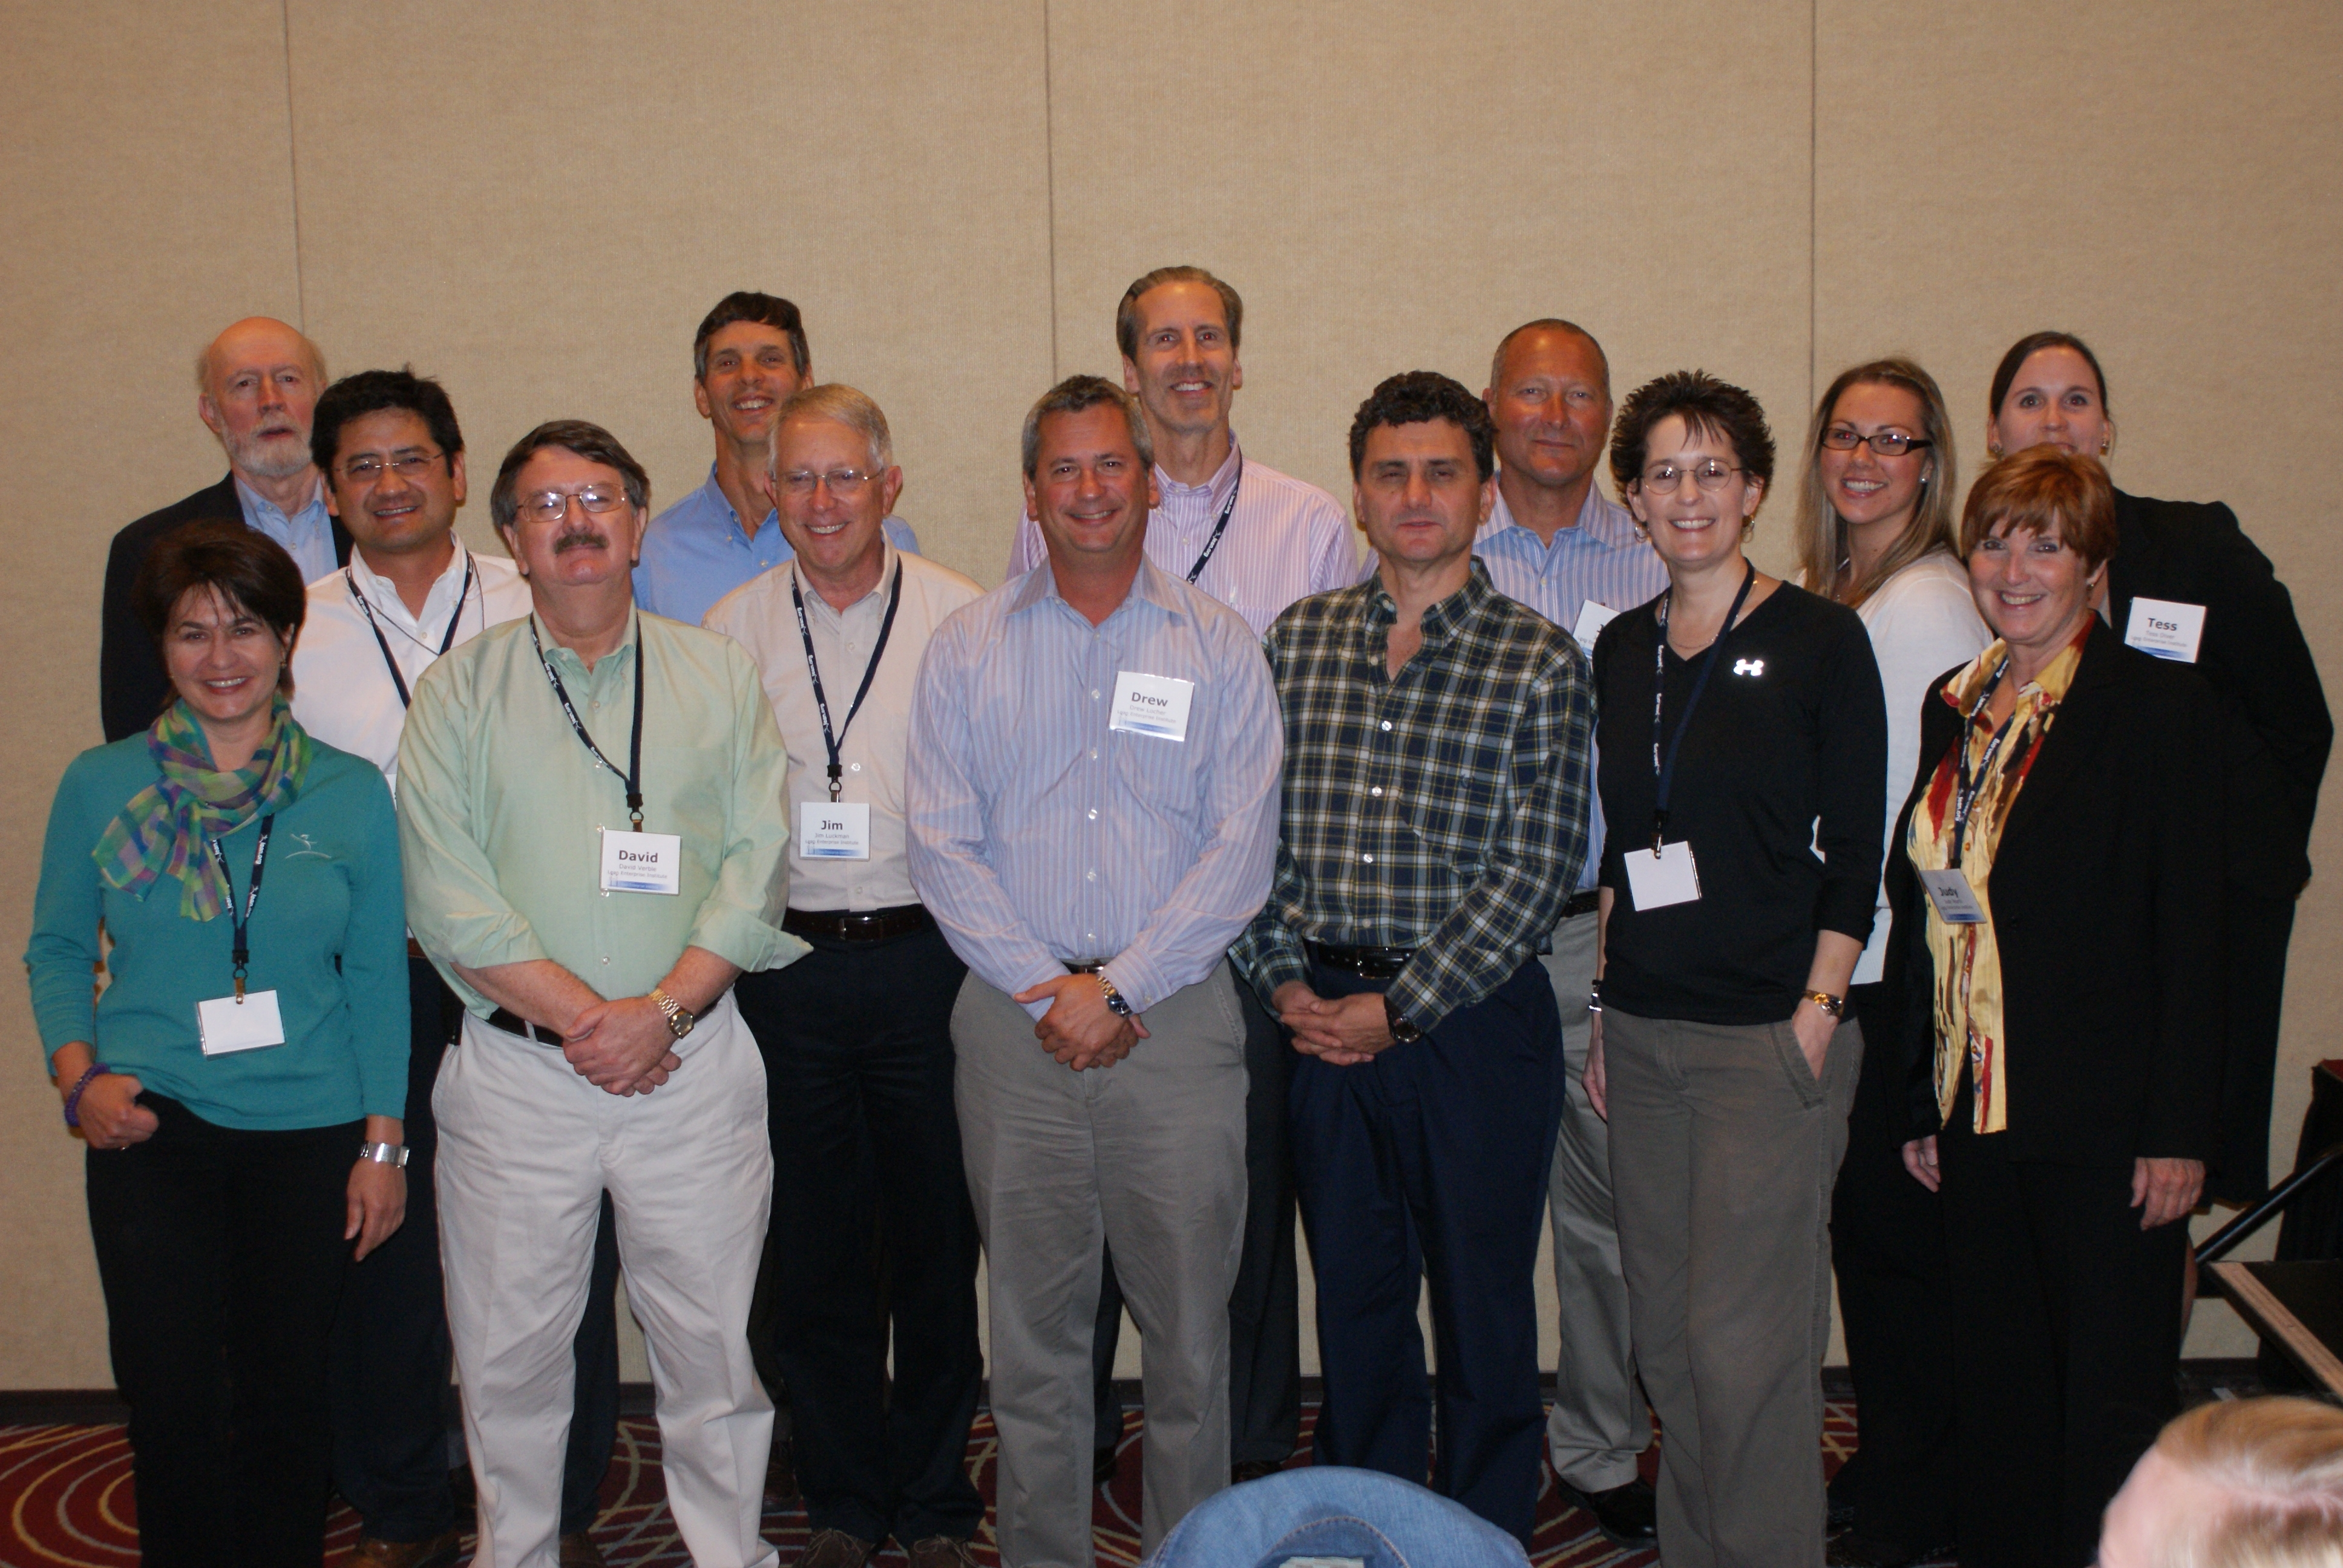 With fellow LEI faculty members and staff, along with Jim Womack founder of LEI.